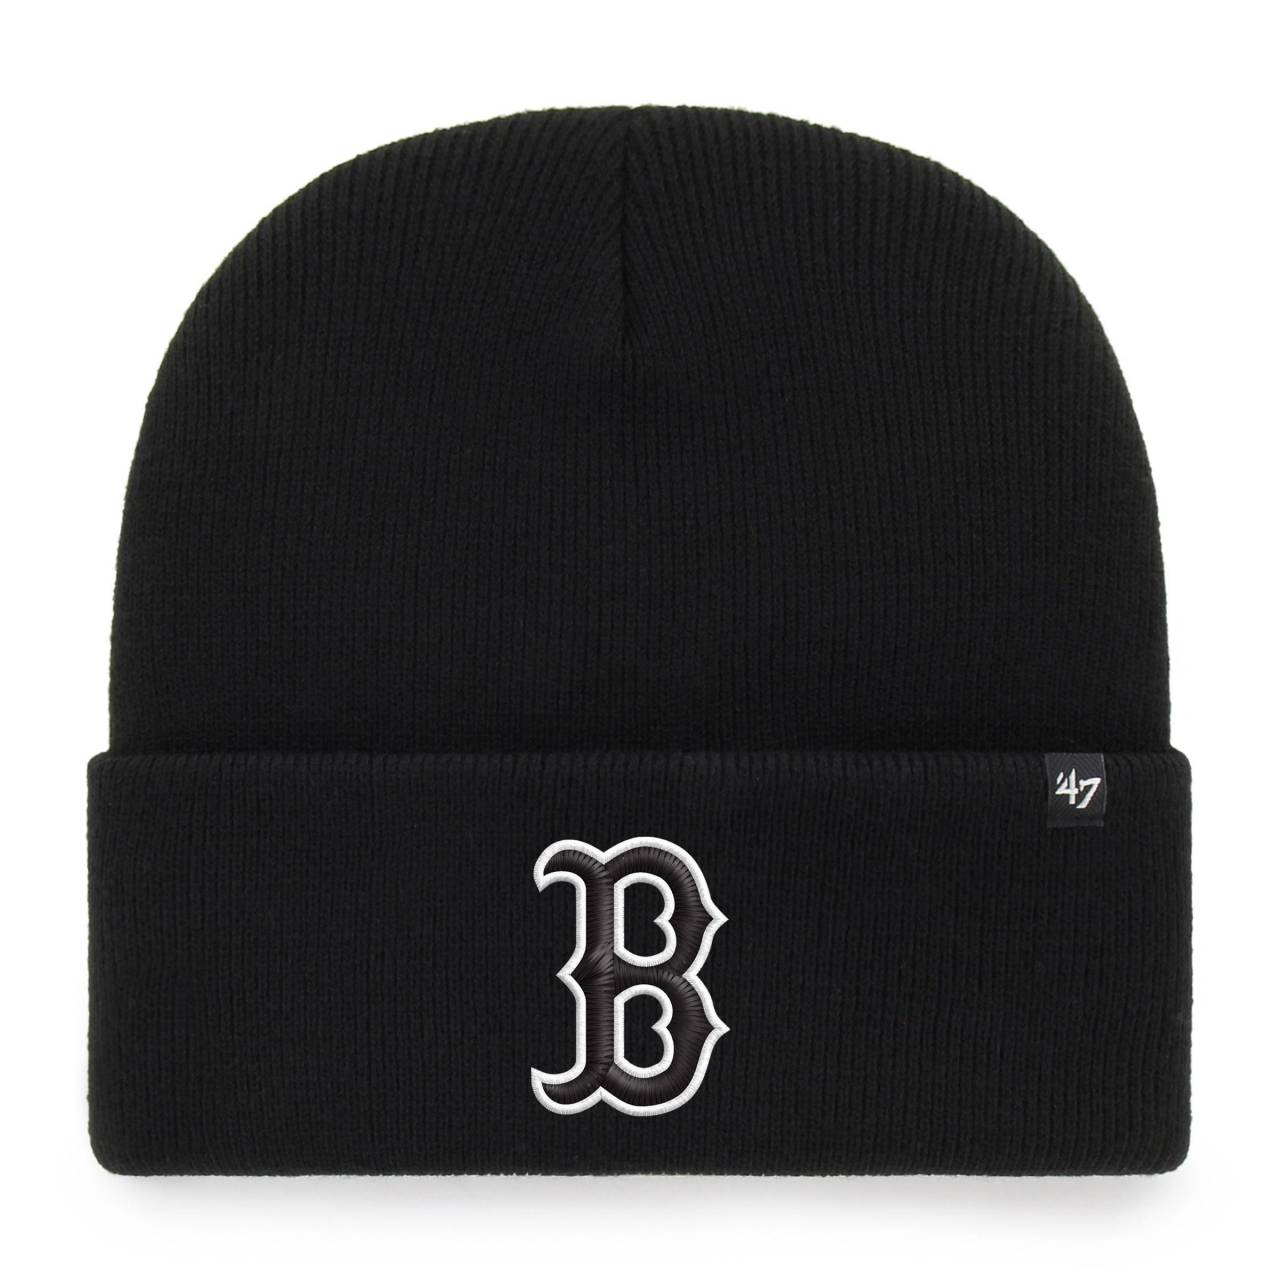 MLB BOSTON RED SOX HYAMAKER ´47 CUFF KNIT BLACK